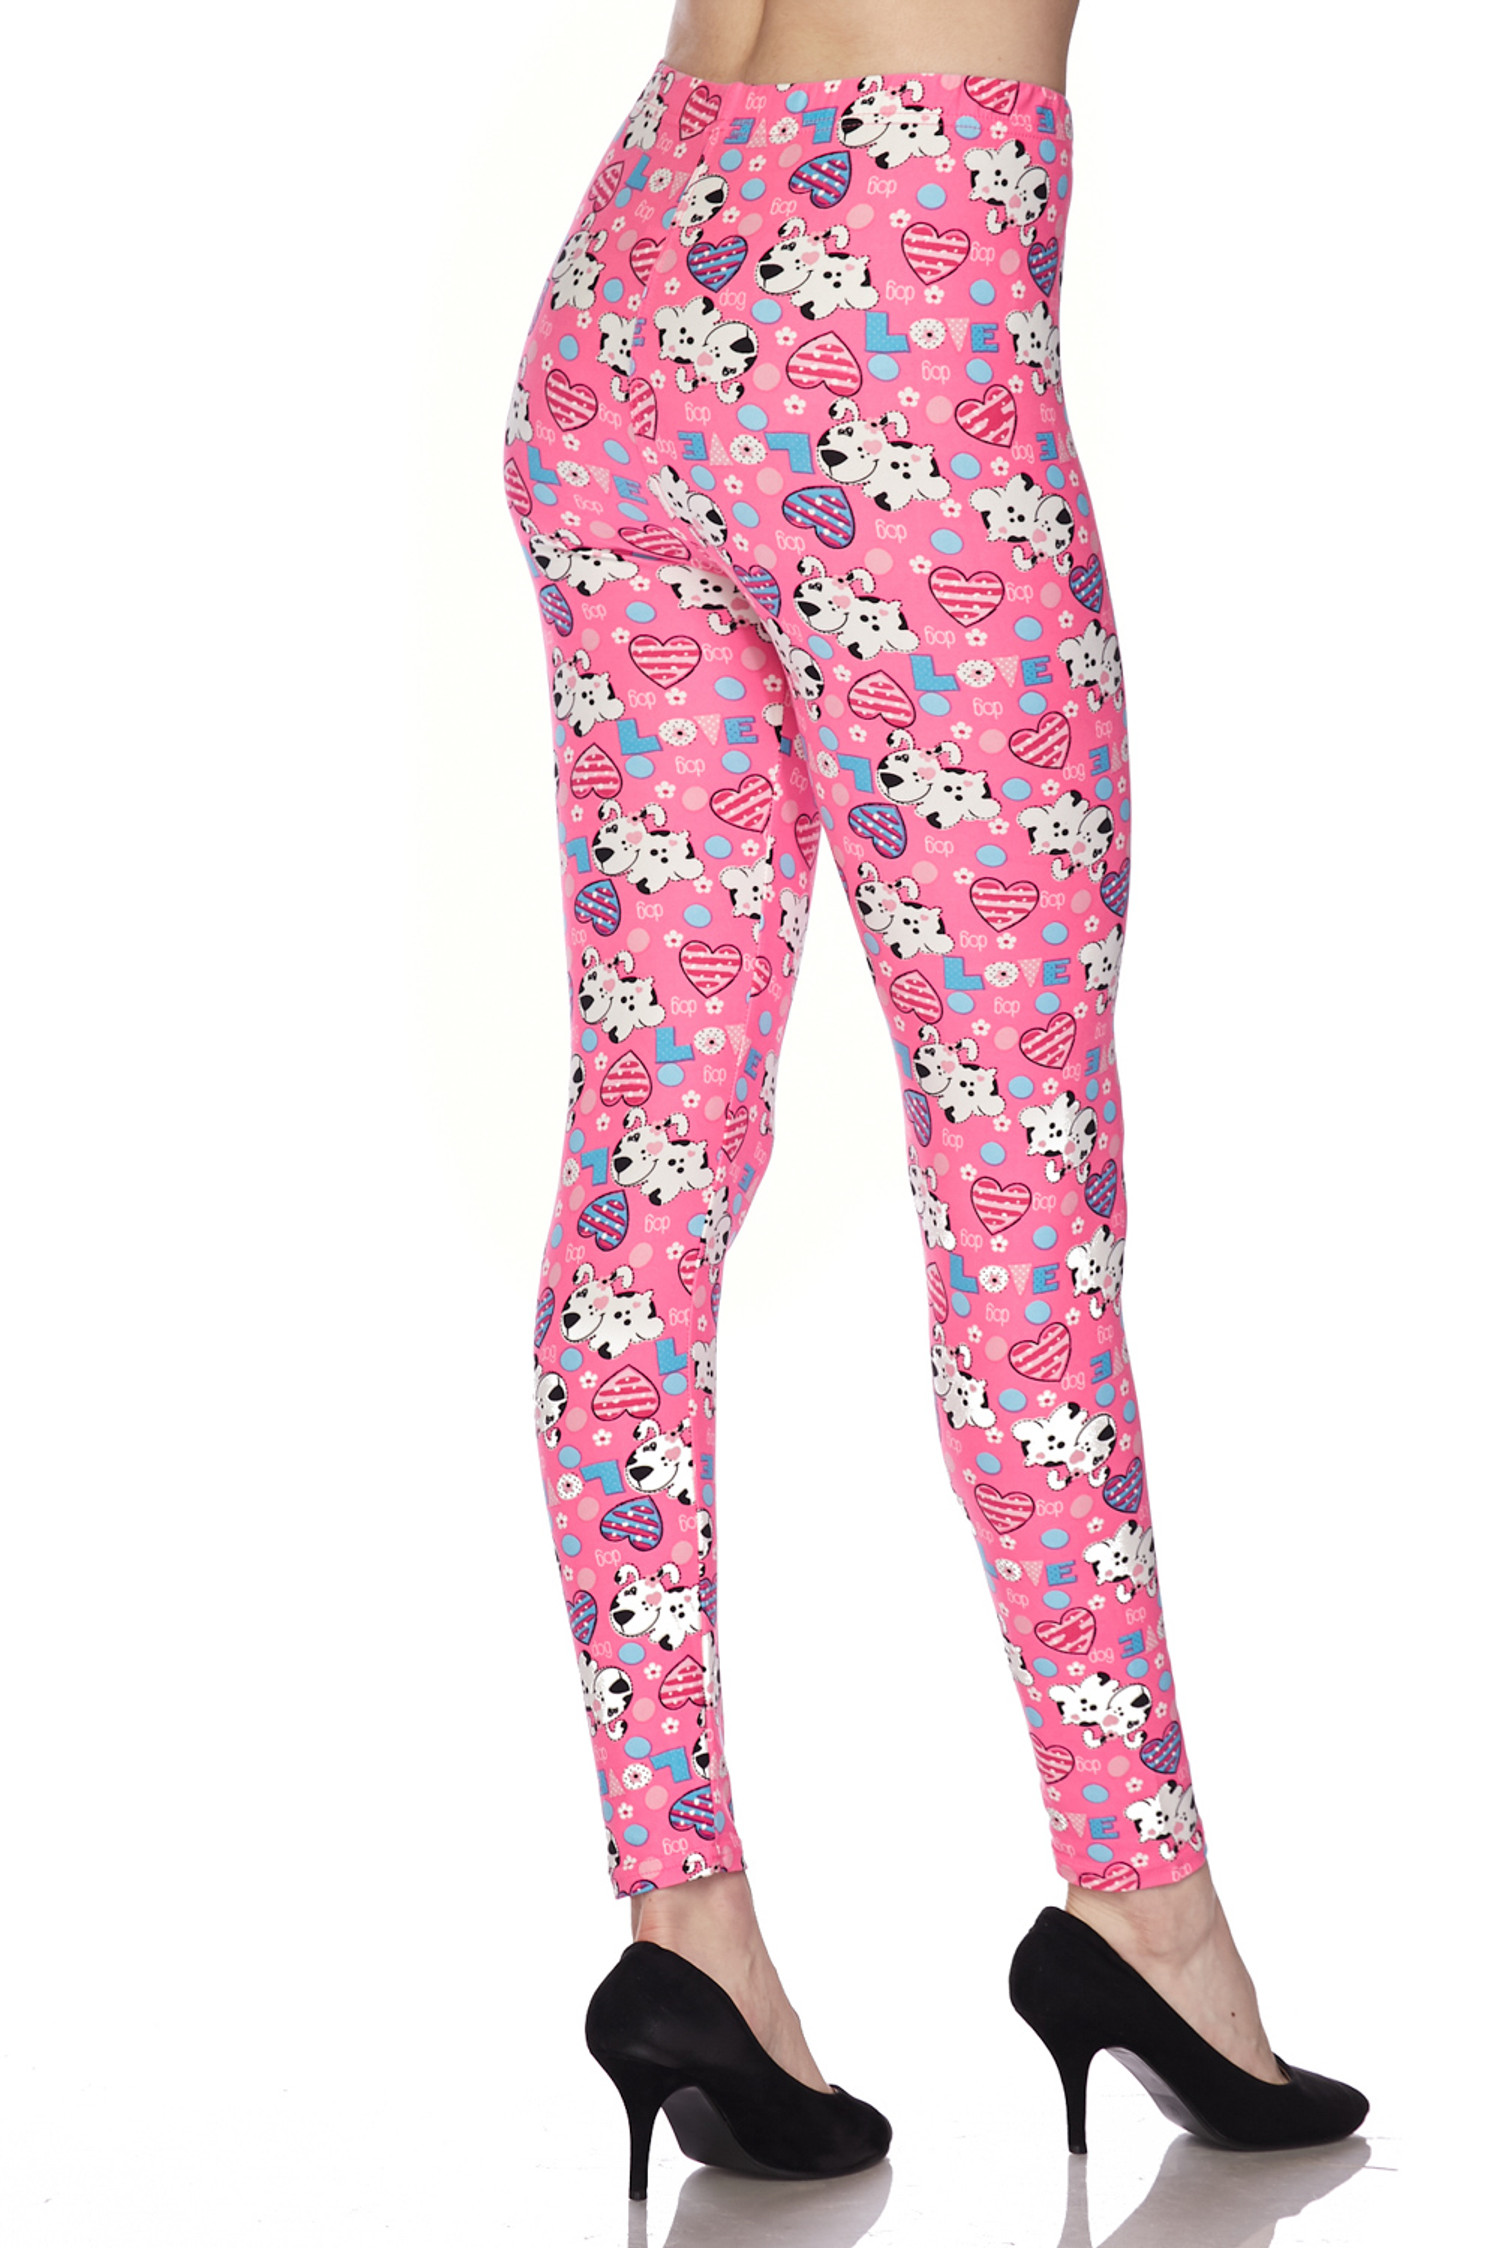 Soft Brushed Pink Puppy Dogs Plus Size Leggings